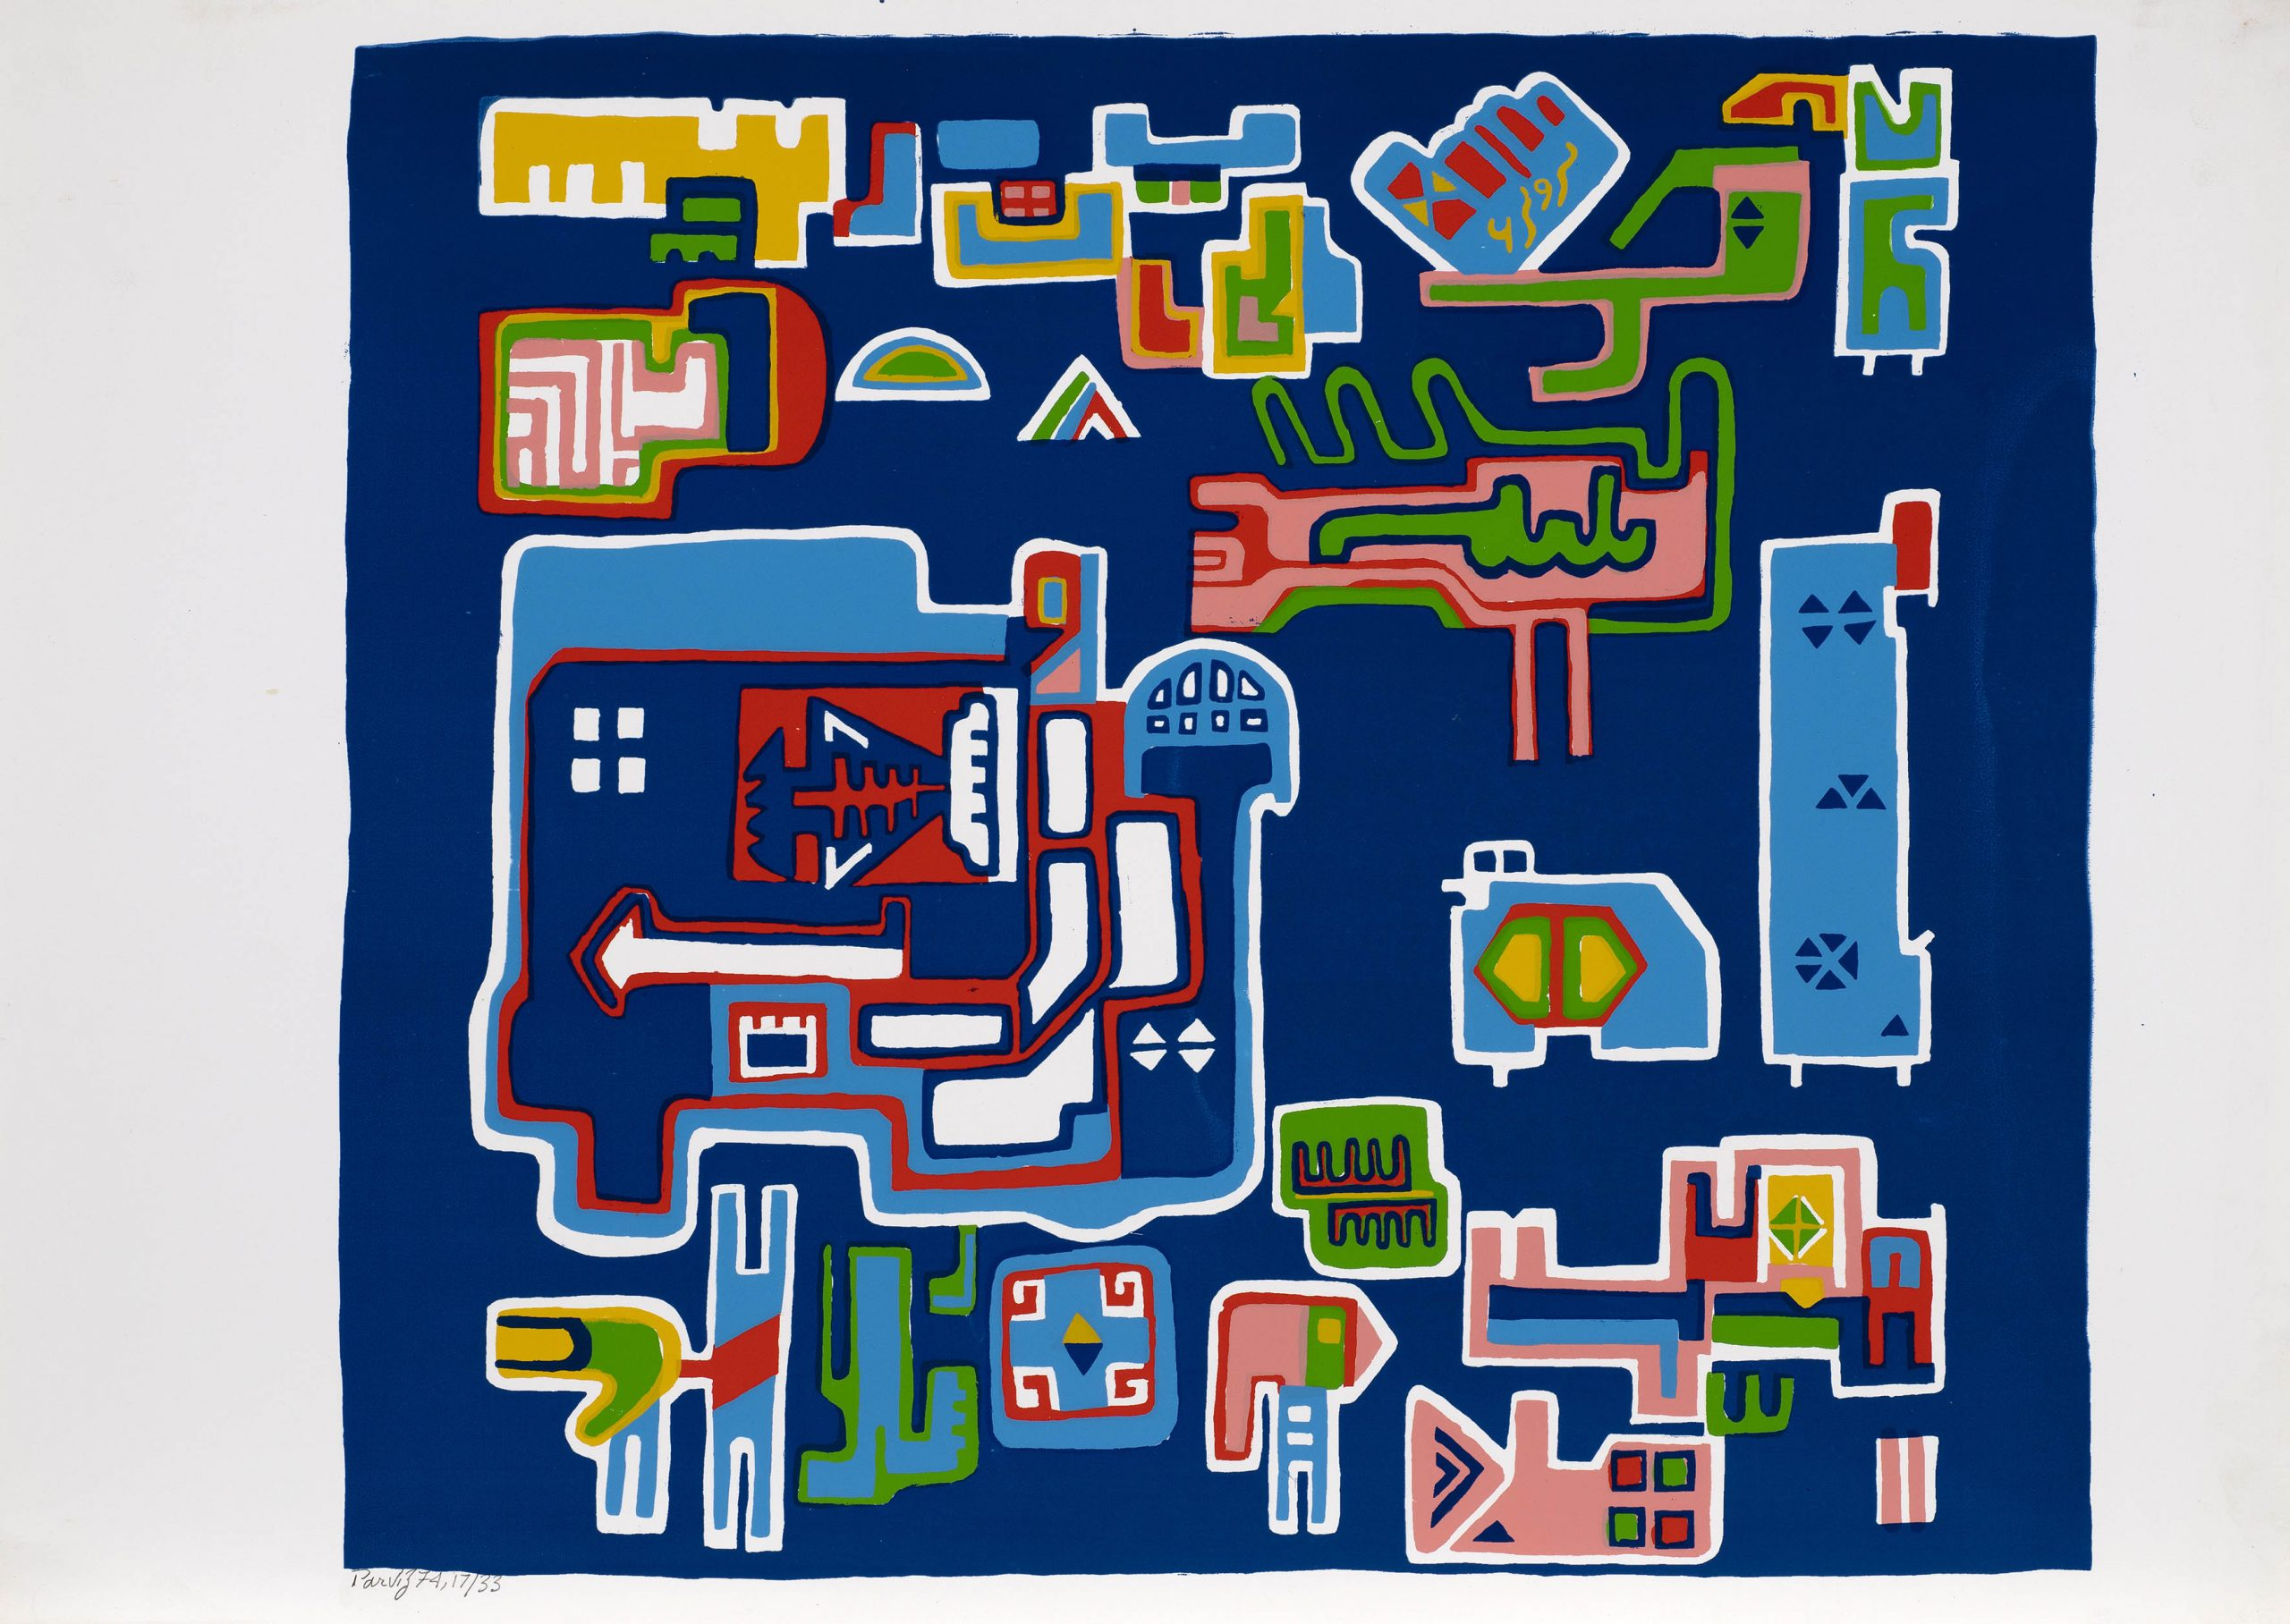 LOVERS IN A GARDEN, 1974   Screenprint on paper   Signed, dated and editioned 'Parviz 74' along lower margin   From an edition of 33   50 x 70 cm (19 3/4 x 27 1/2 in)